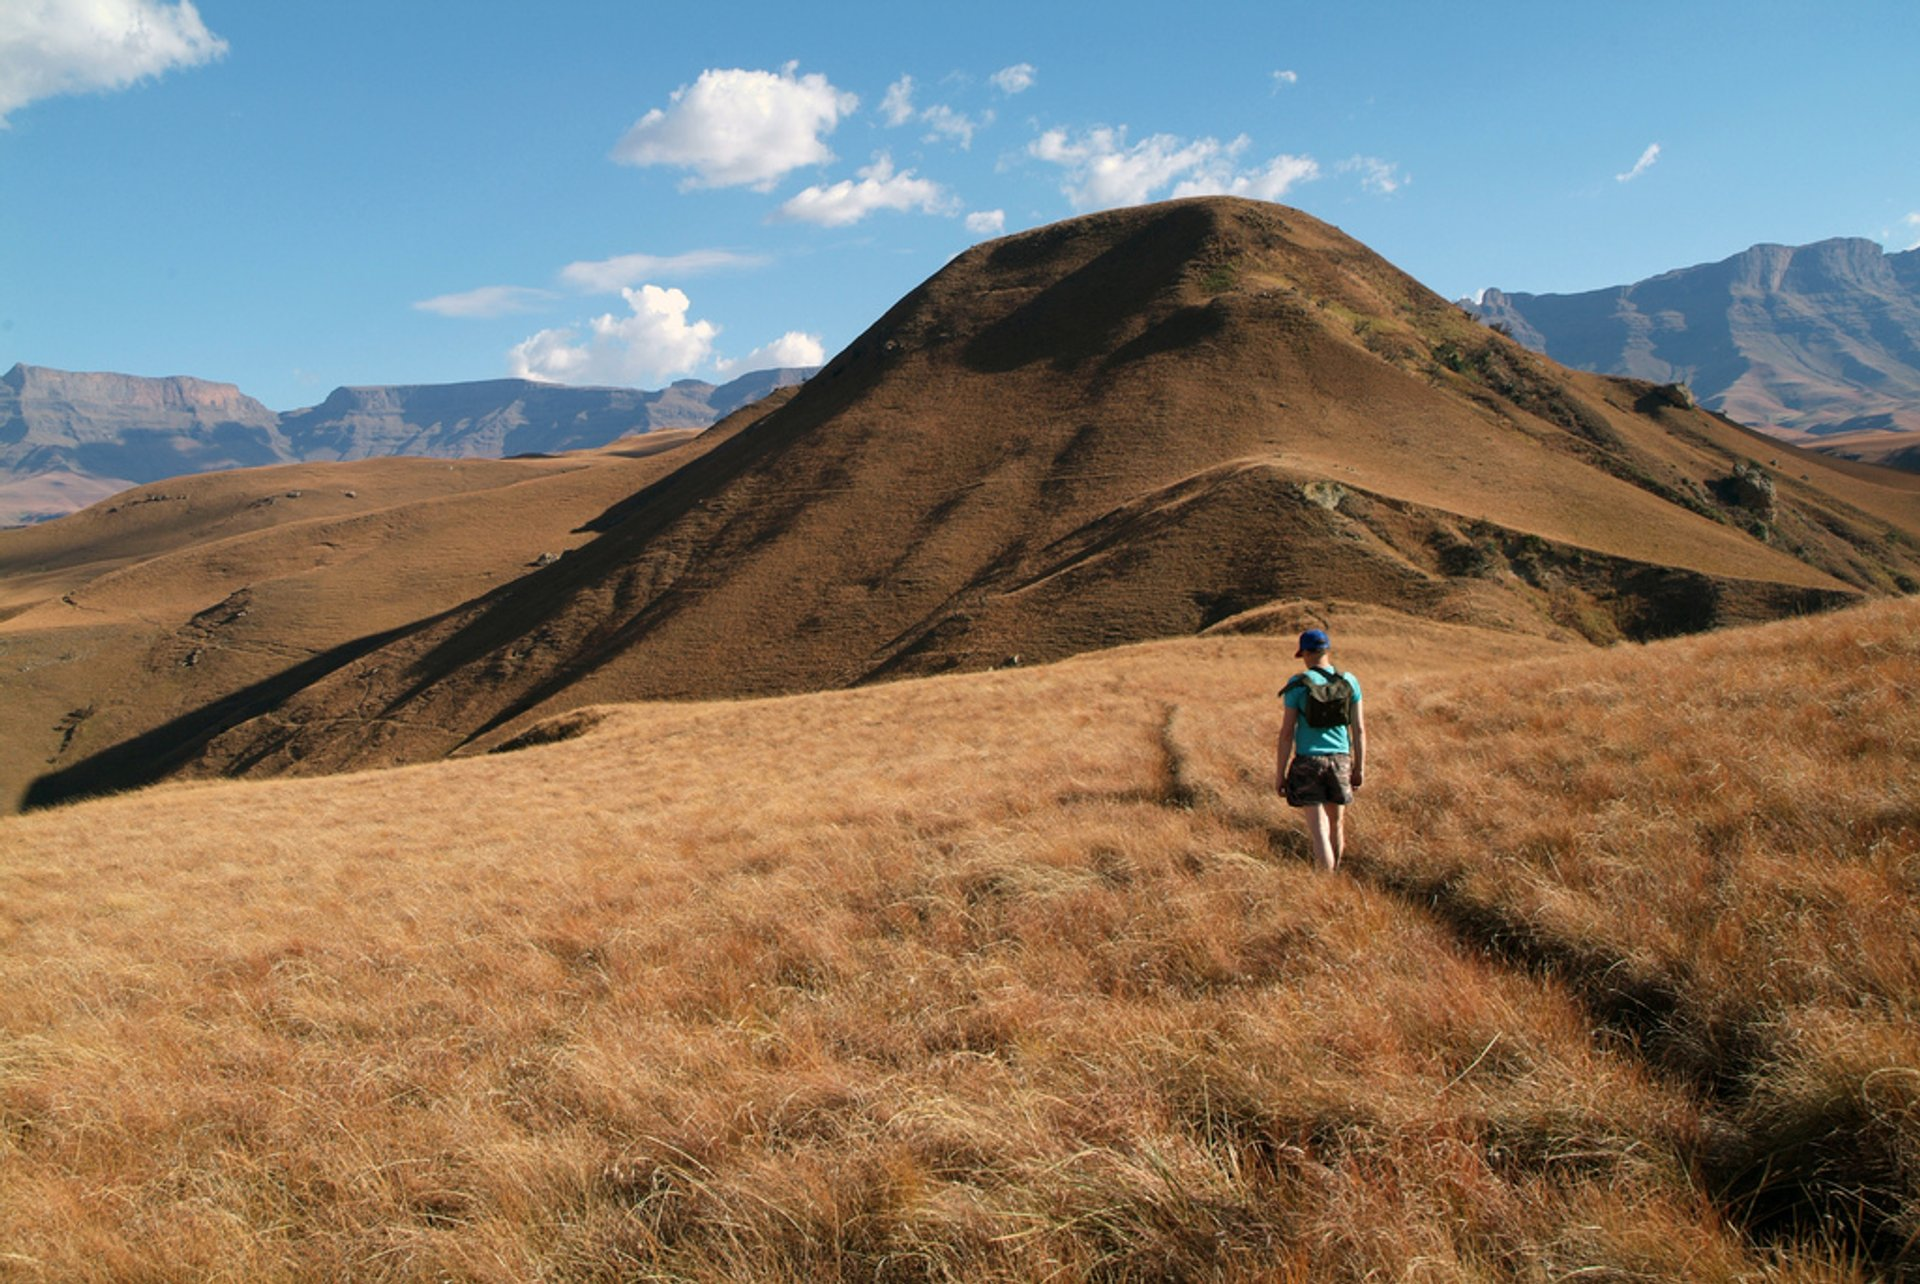 Hiking in Drakensberg in South Africa - Best Time